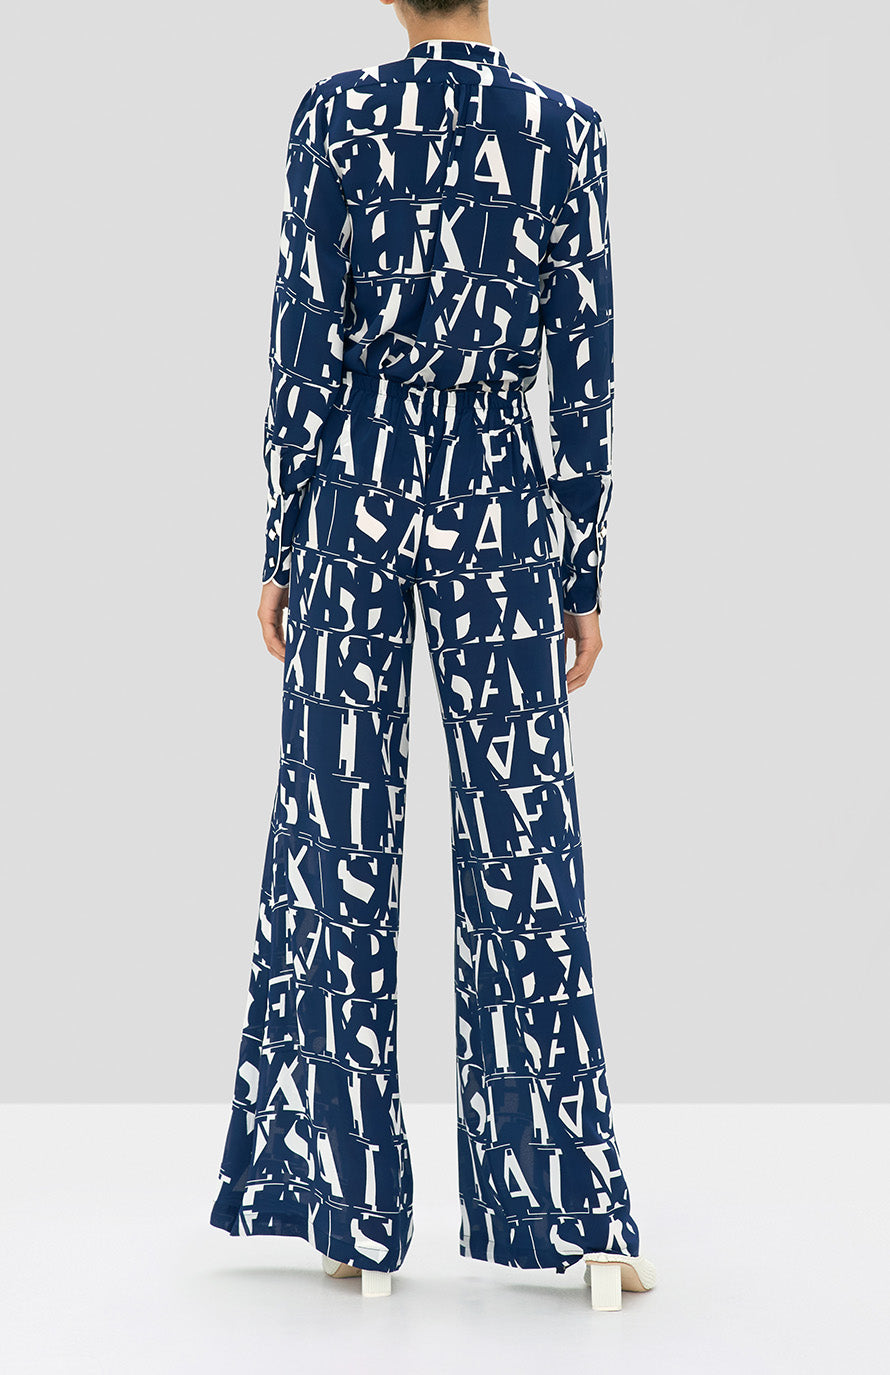 Alexis Dotson Top and Goda Pant in Navy Print - Rear View